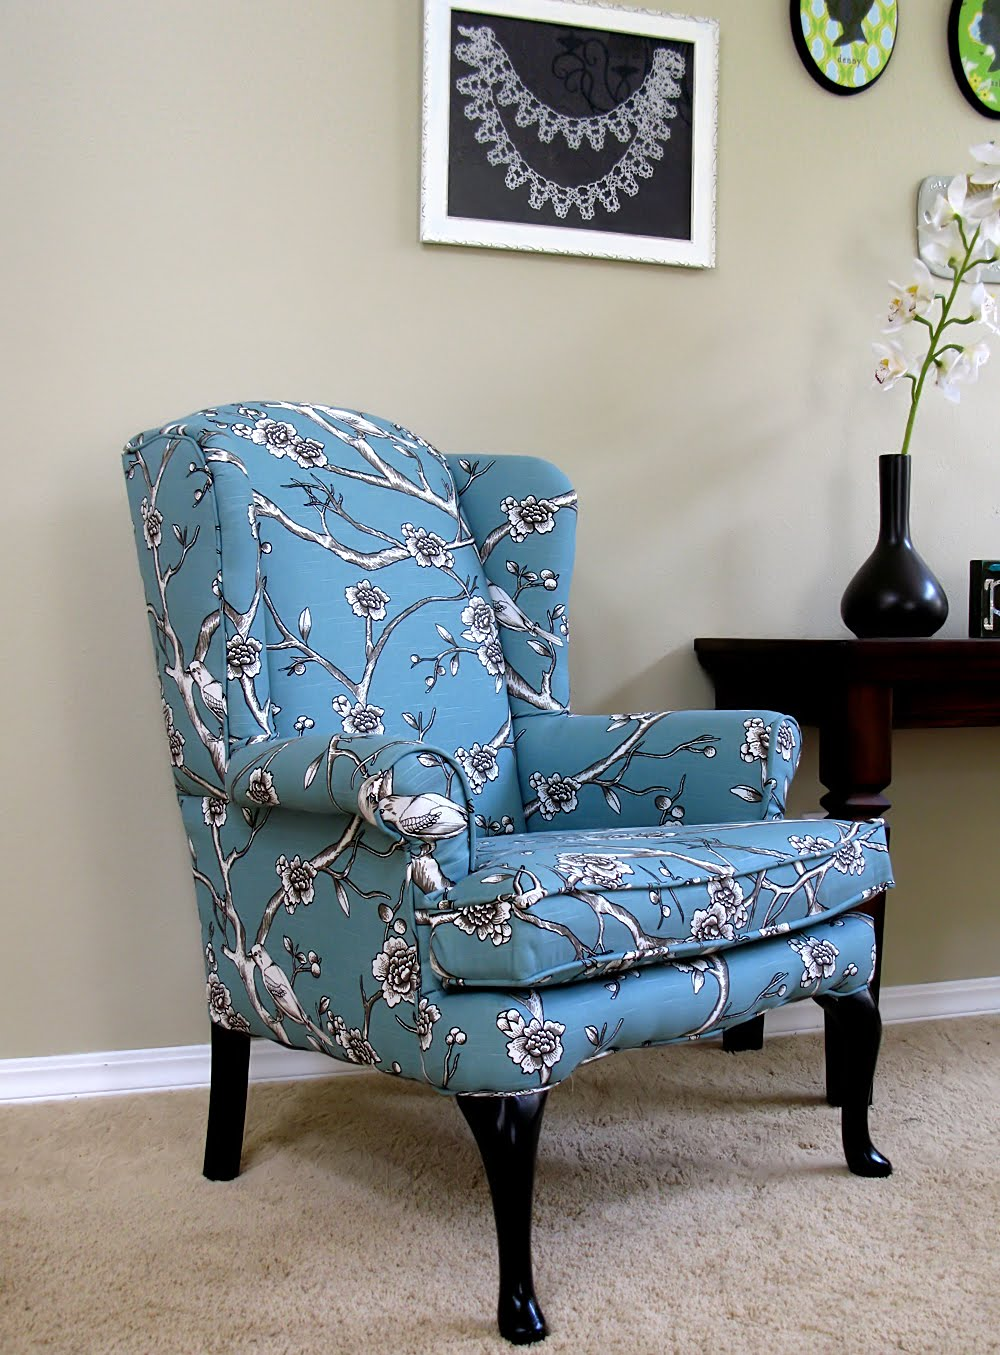 Delicieux Blue Turquoise Design Of Upholstered Wingback Chair Near Dark Wooden Table  And Frame